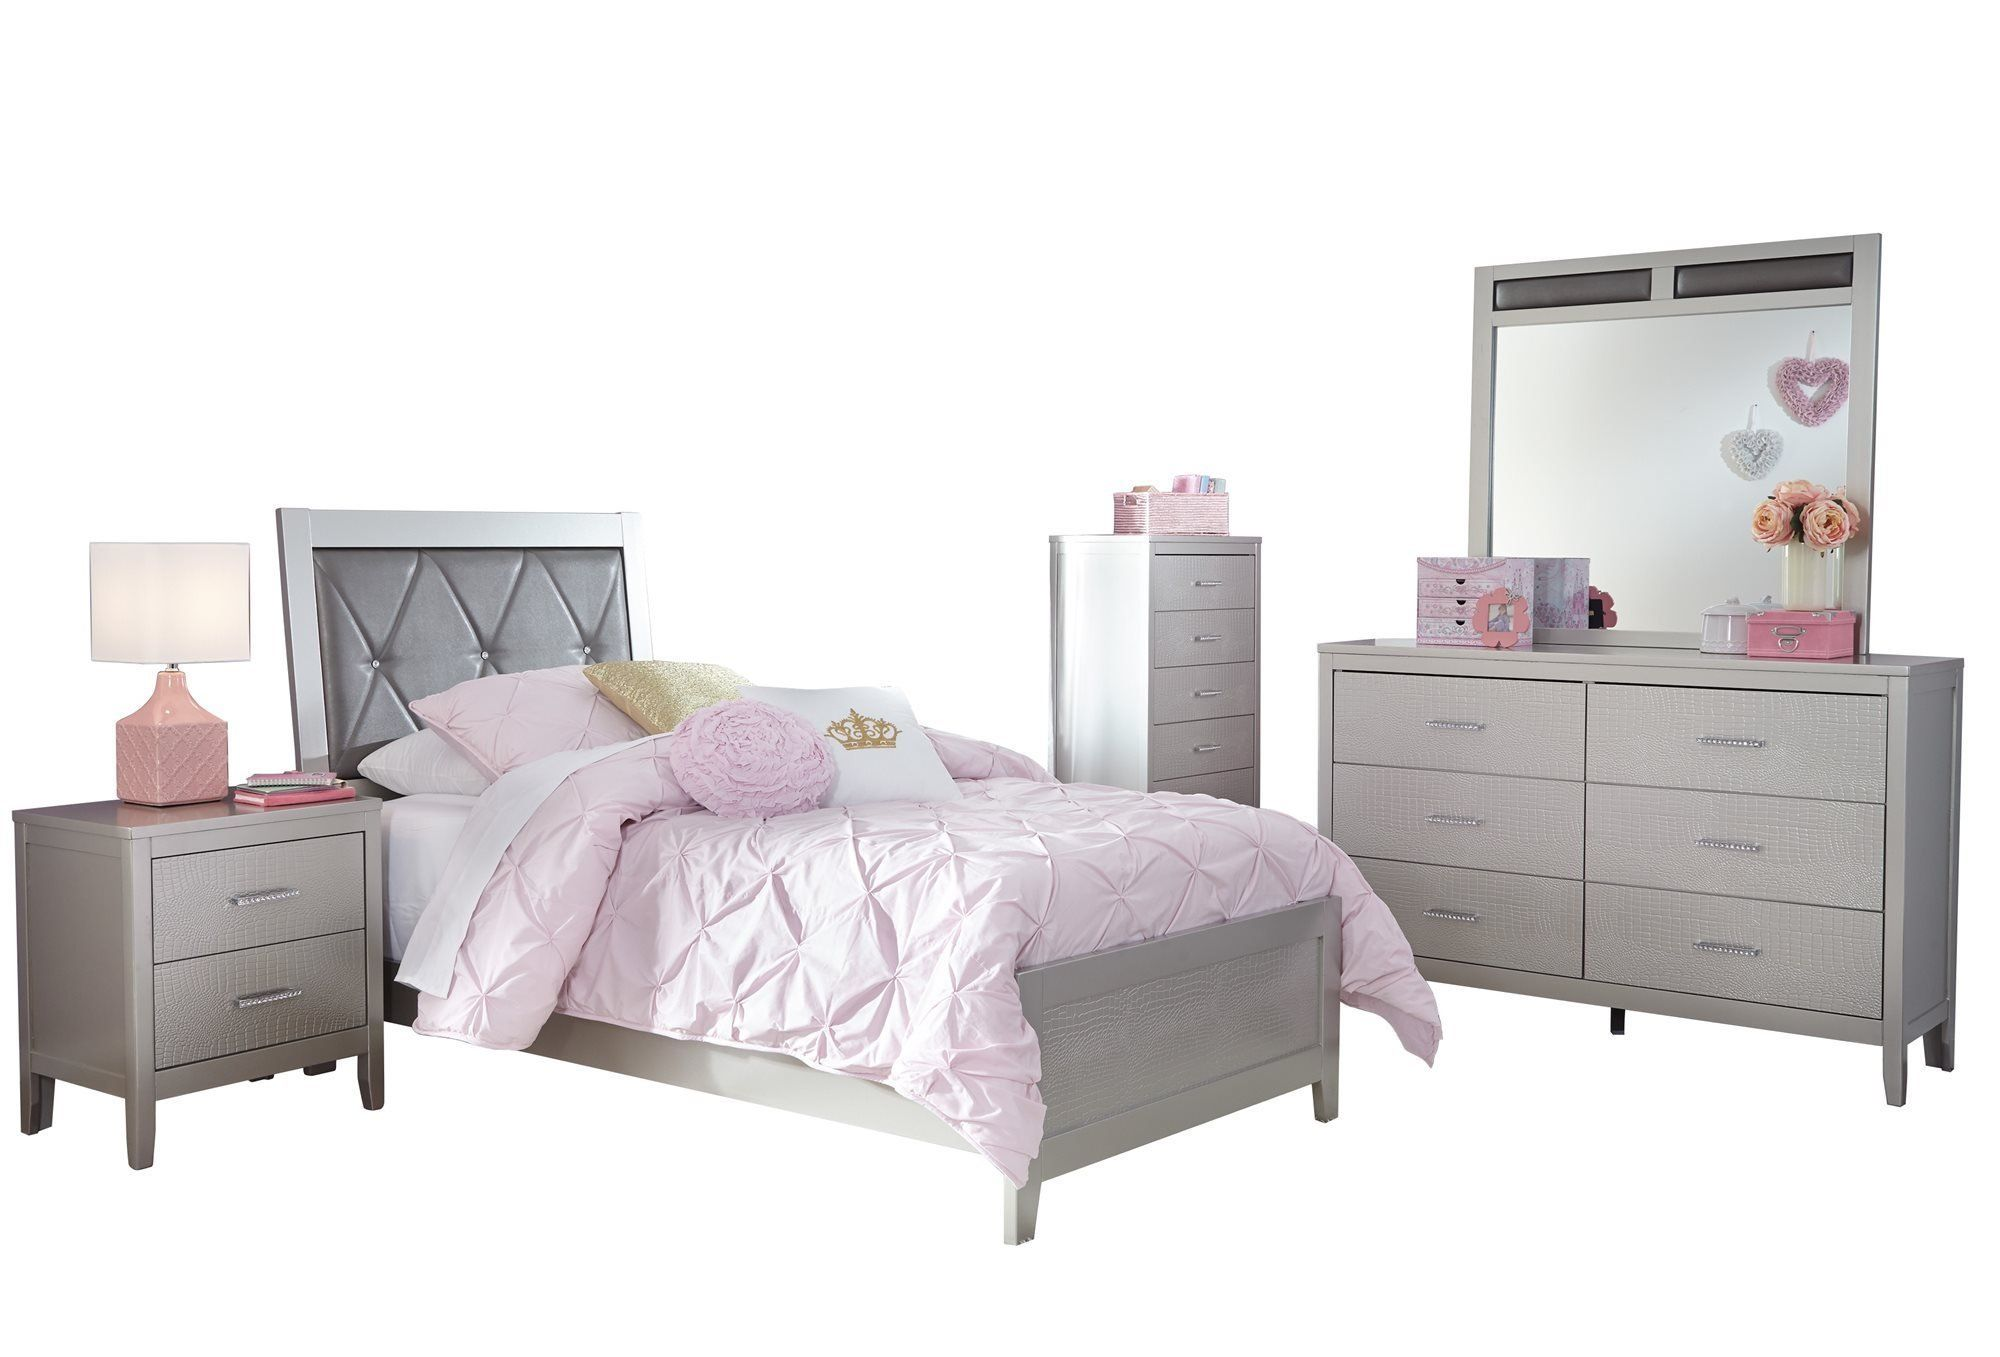 Ashley Olivet 5pc Bedroom Set Twin Panel Bed One Nightstand Dresser Mirror Chest In Silv